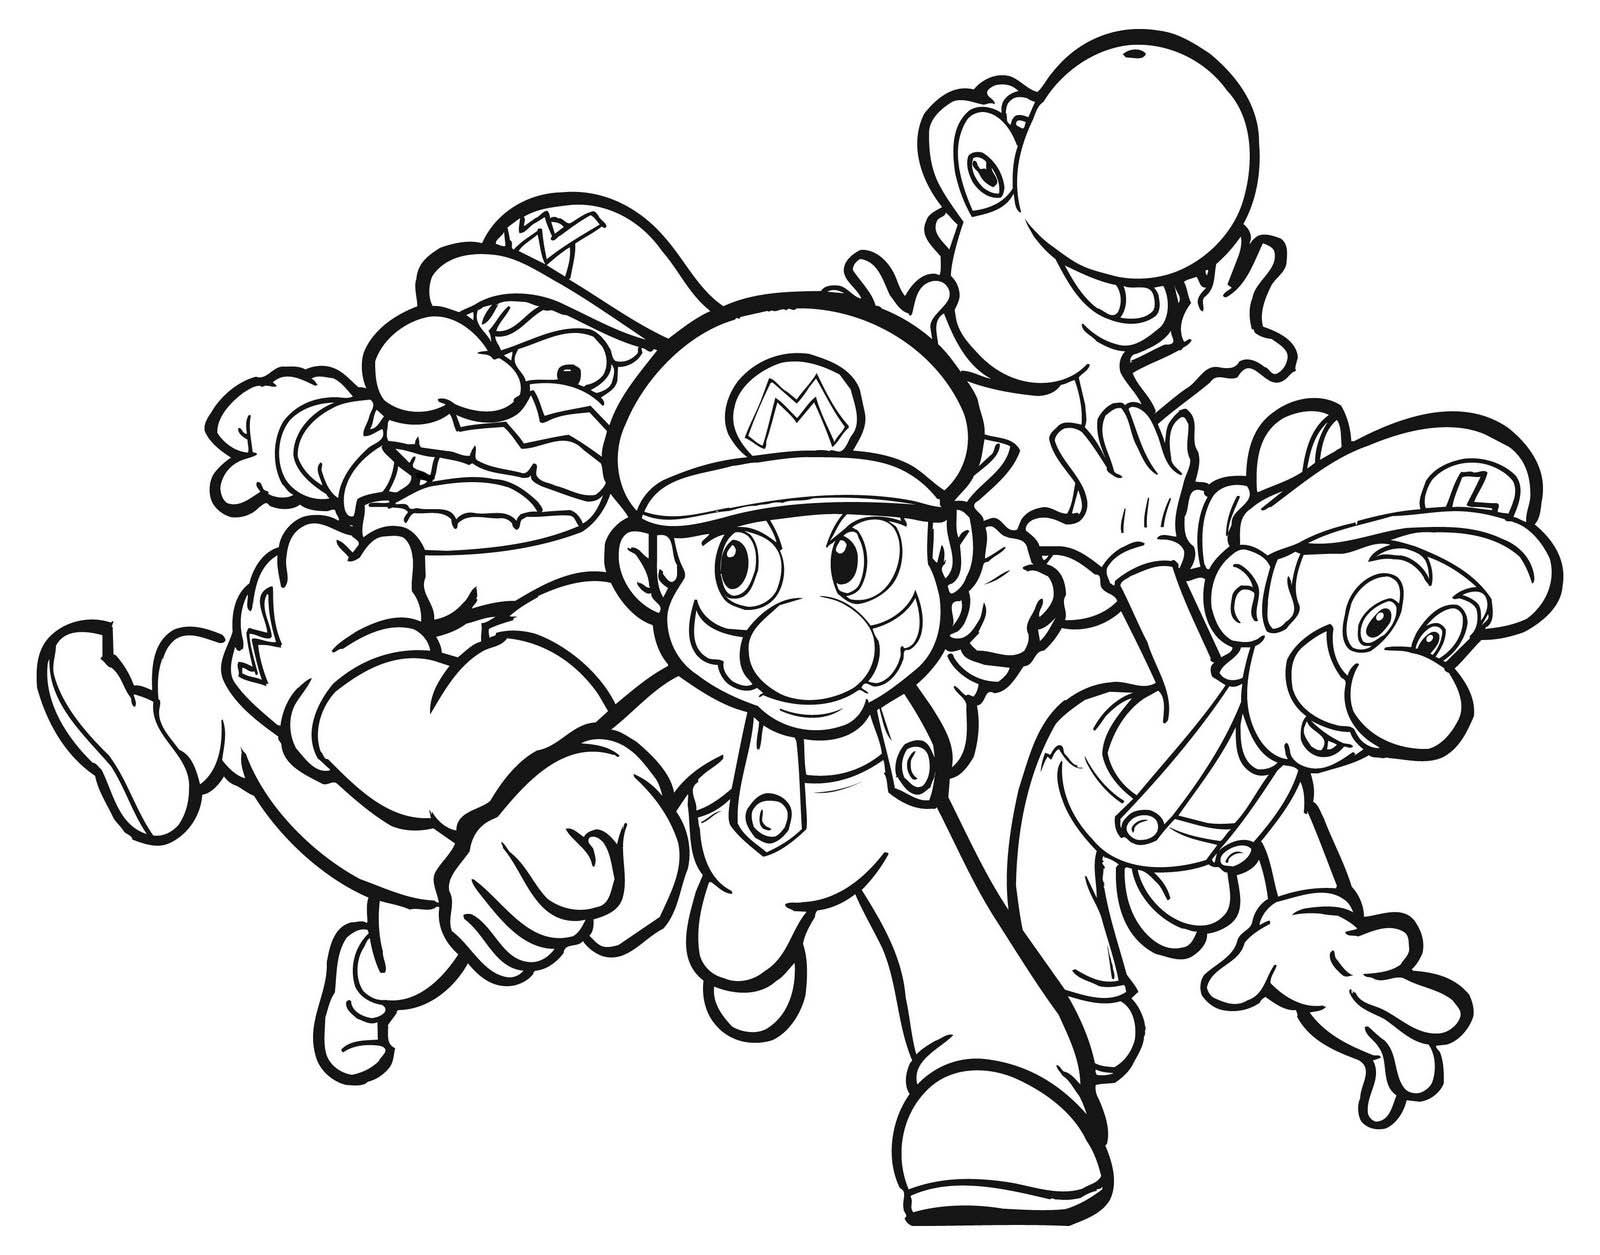 mario brothers wario luigi yoshi nintendo color pages - Character Coloring Pages Kids